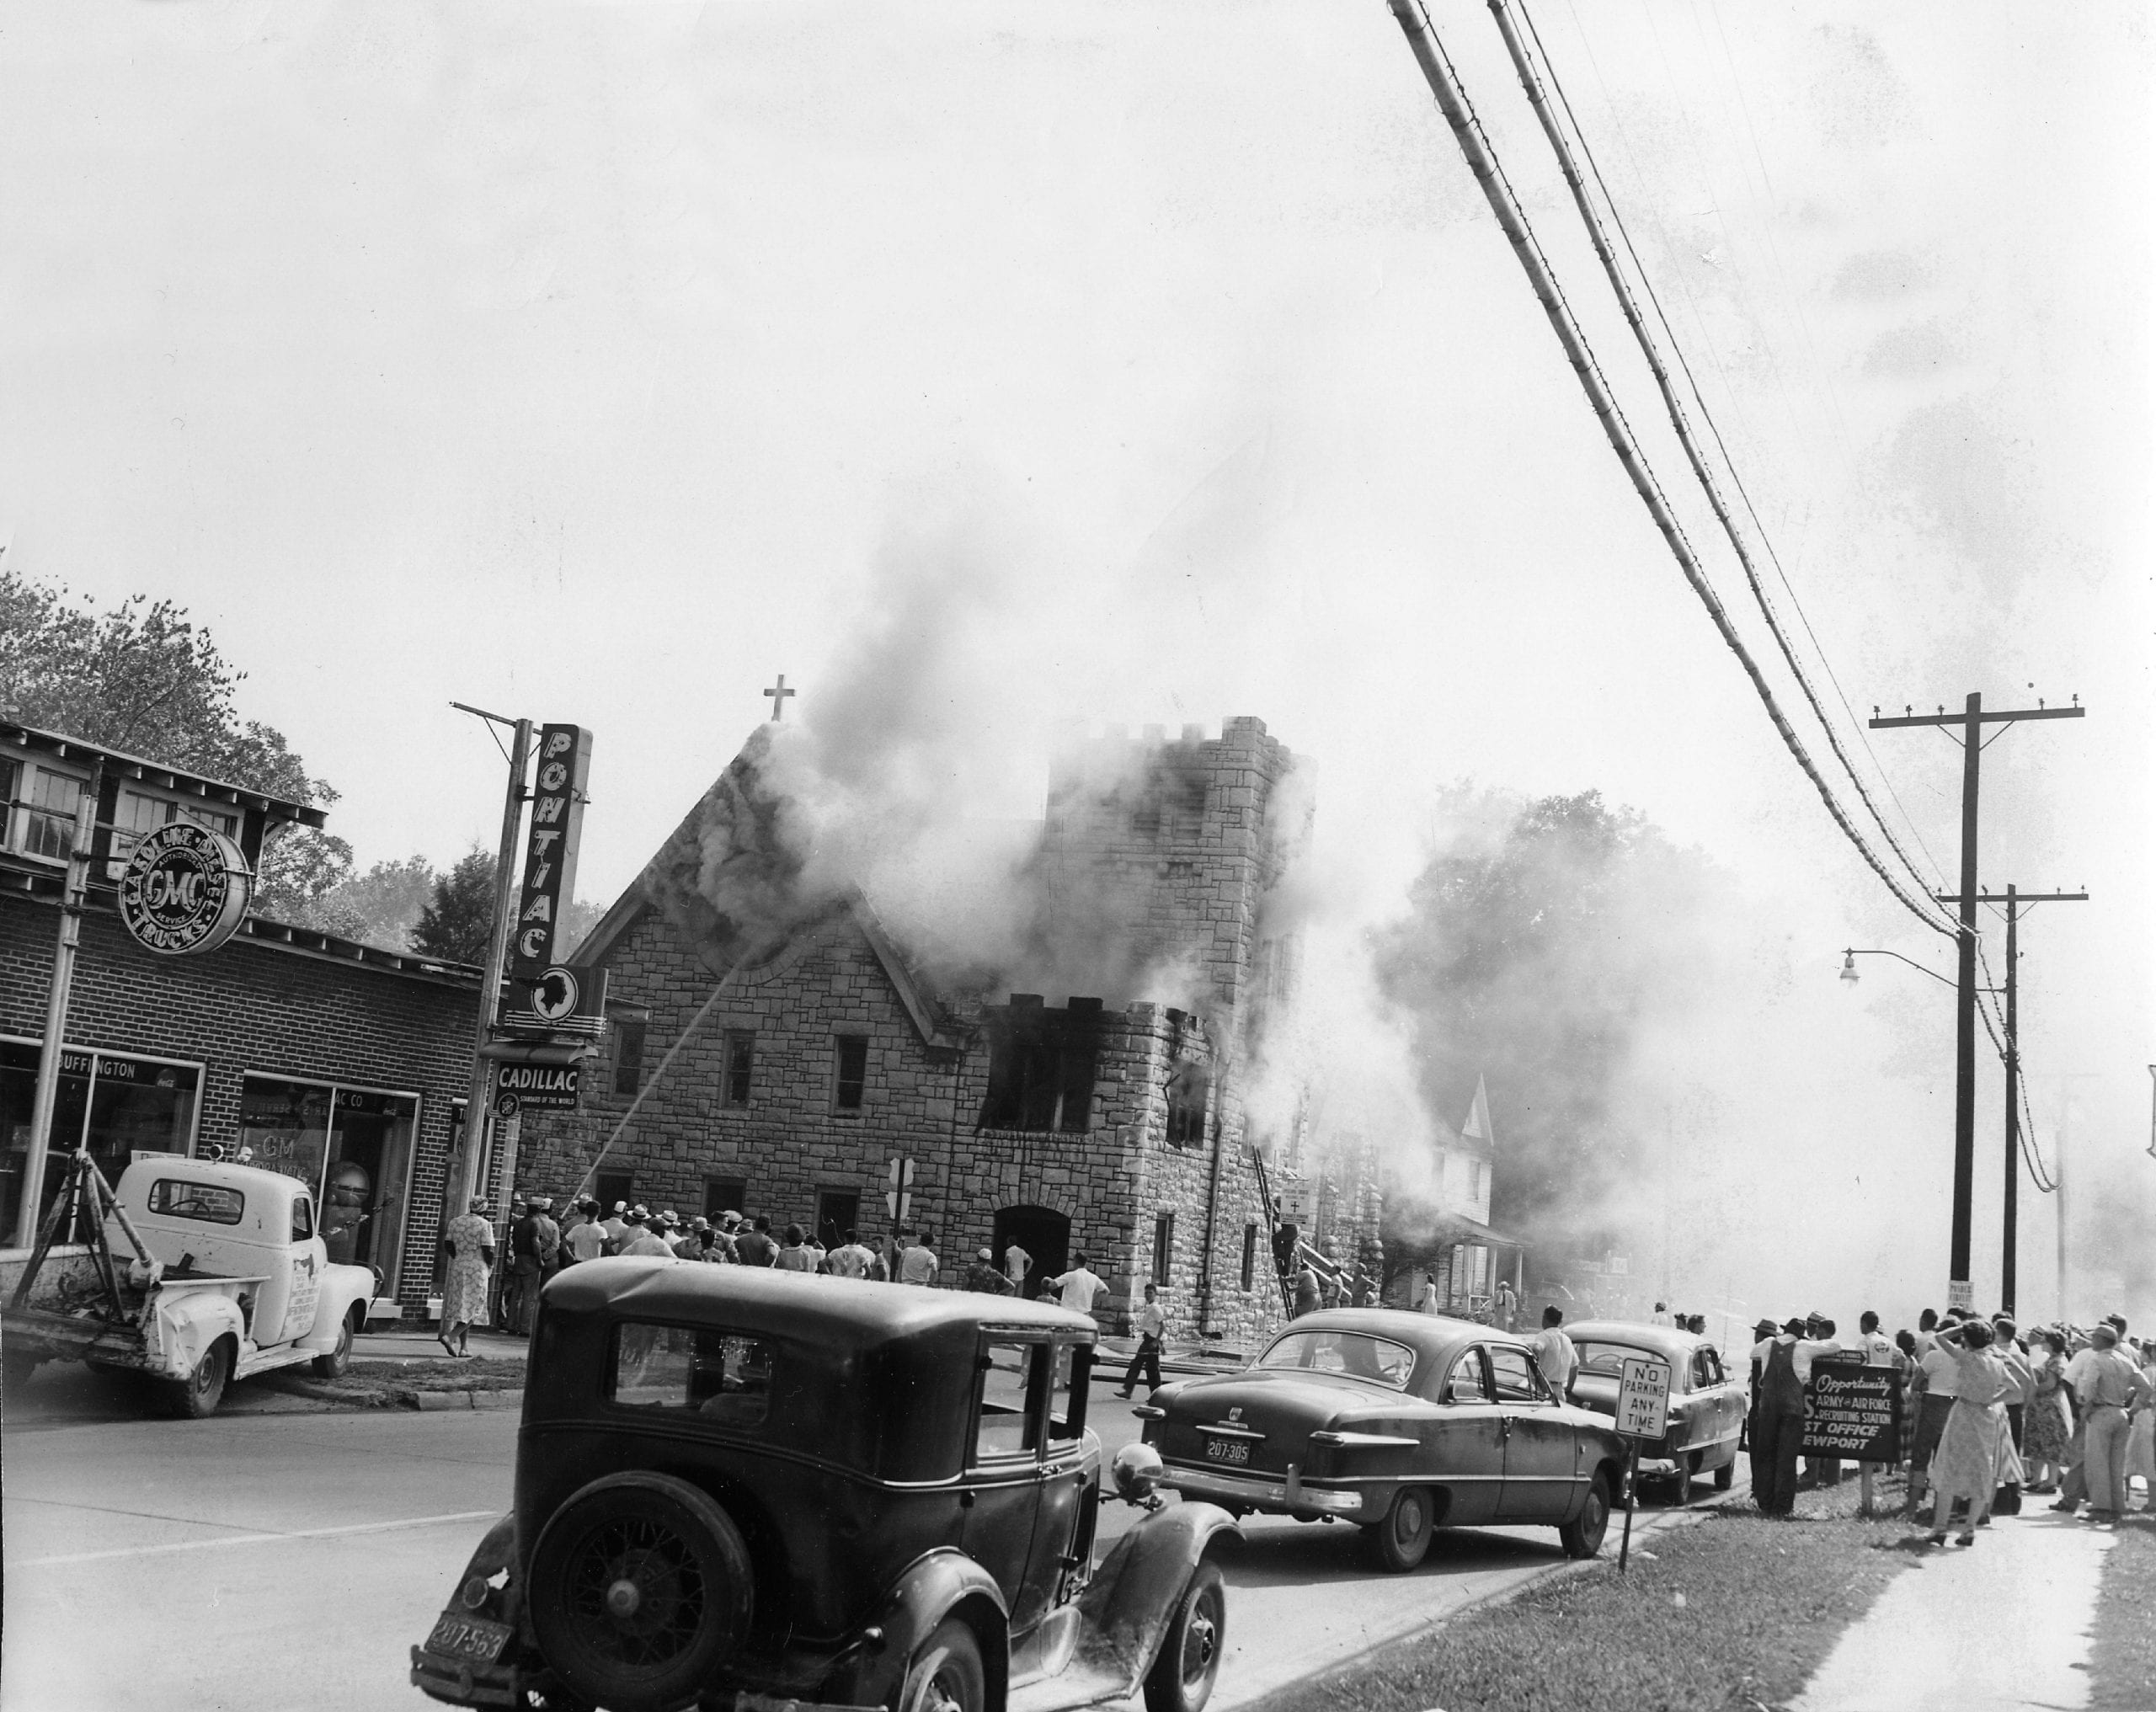 1951 – St. Paul's Fire